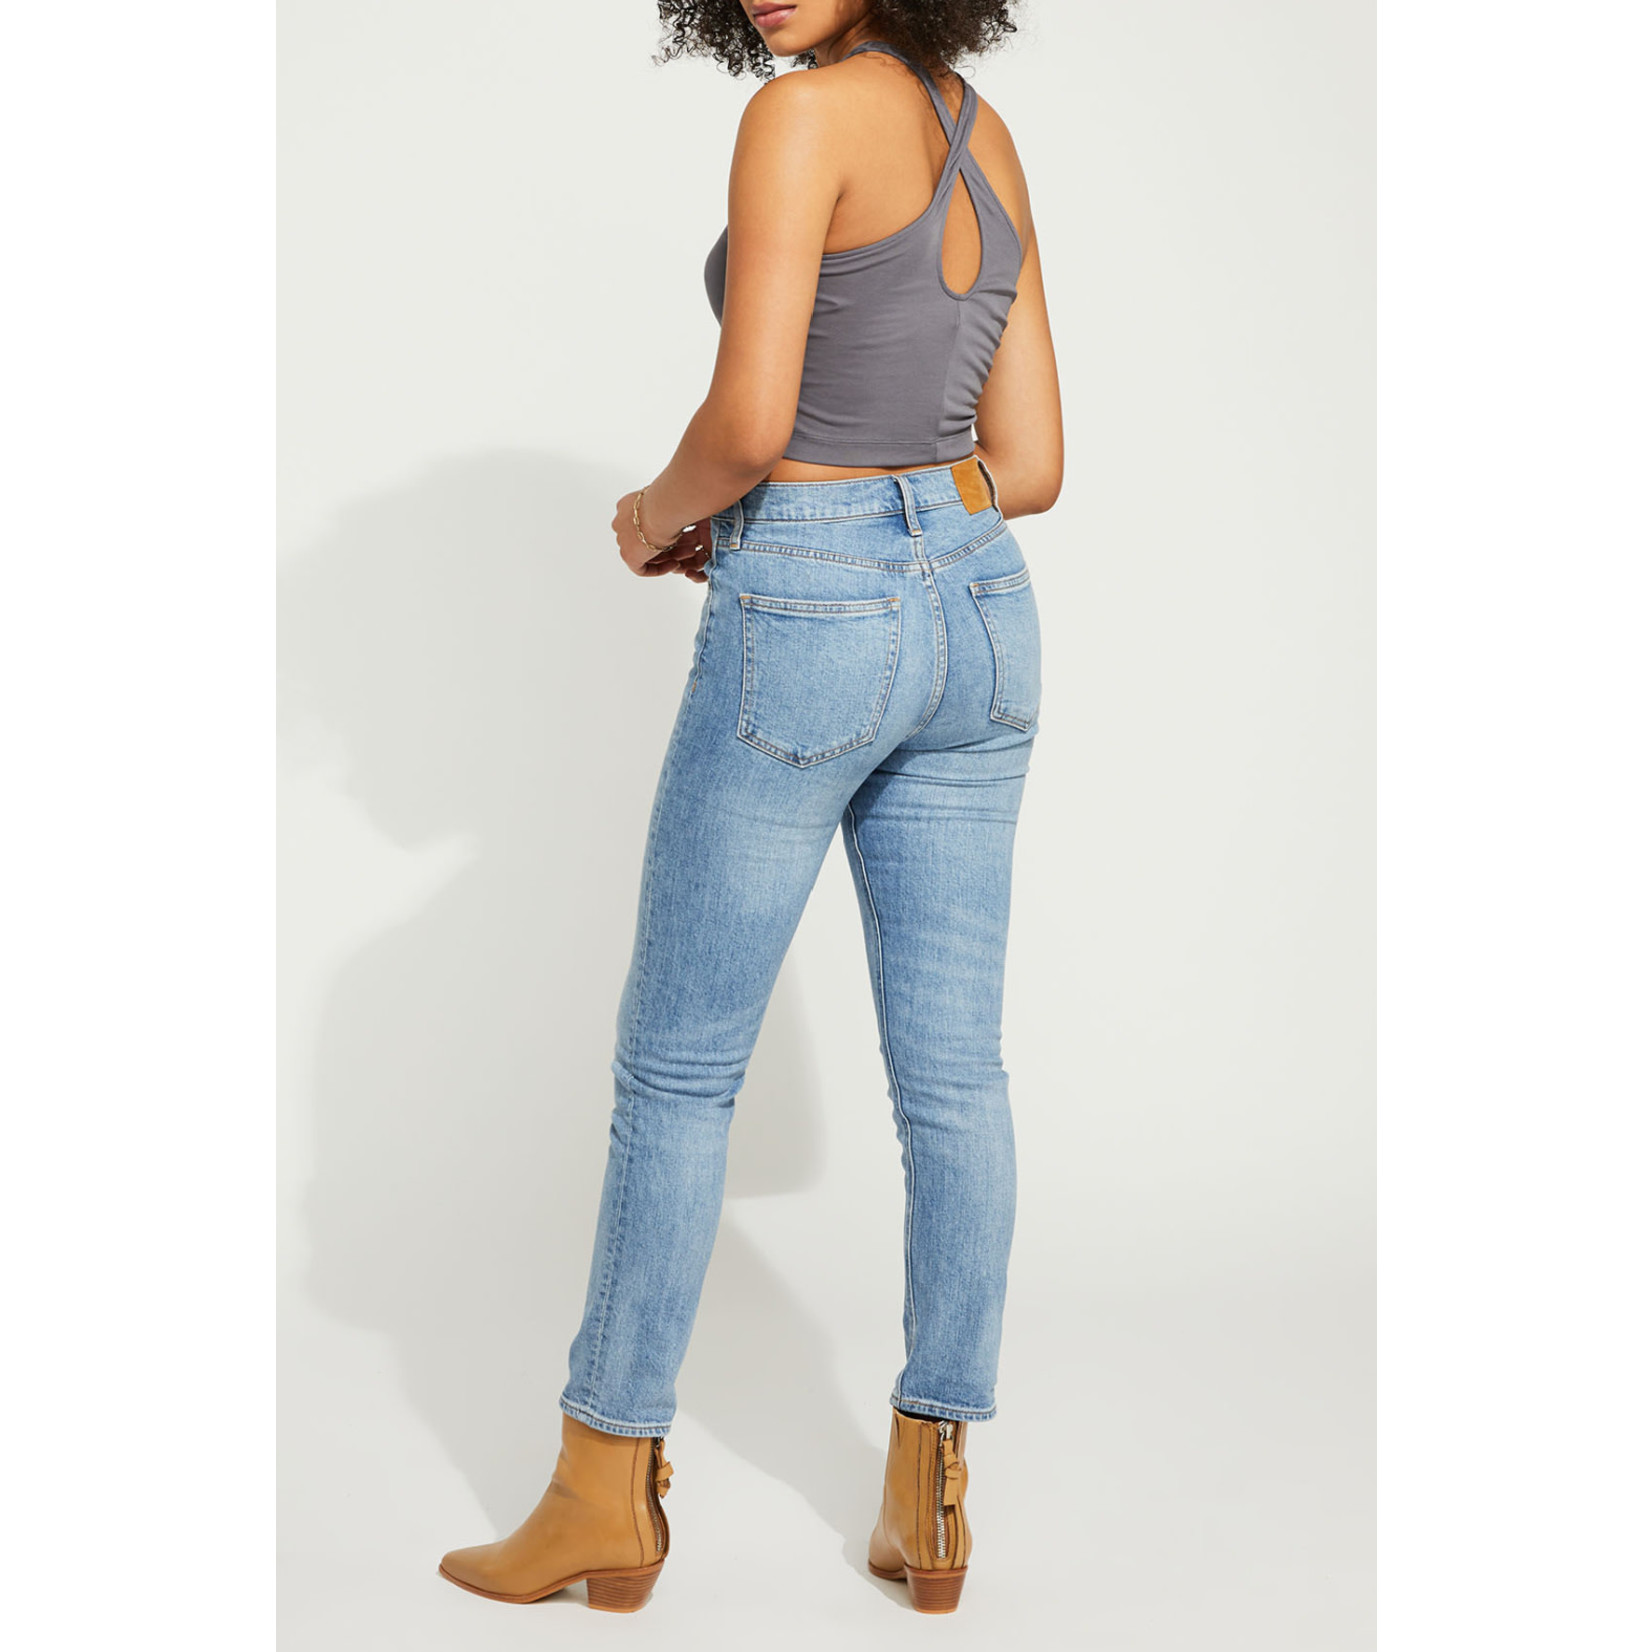 Gentle Fawn Fitted Cross Back Tank